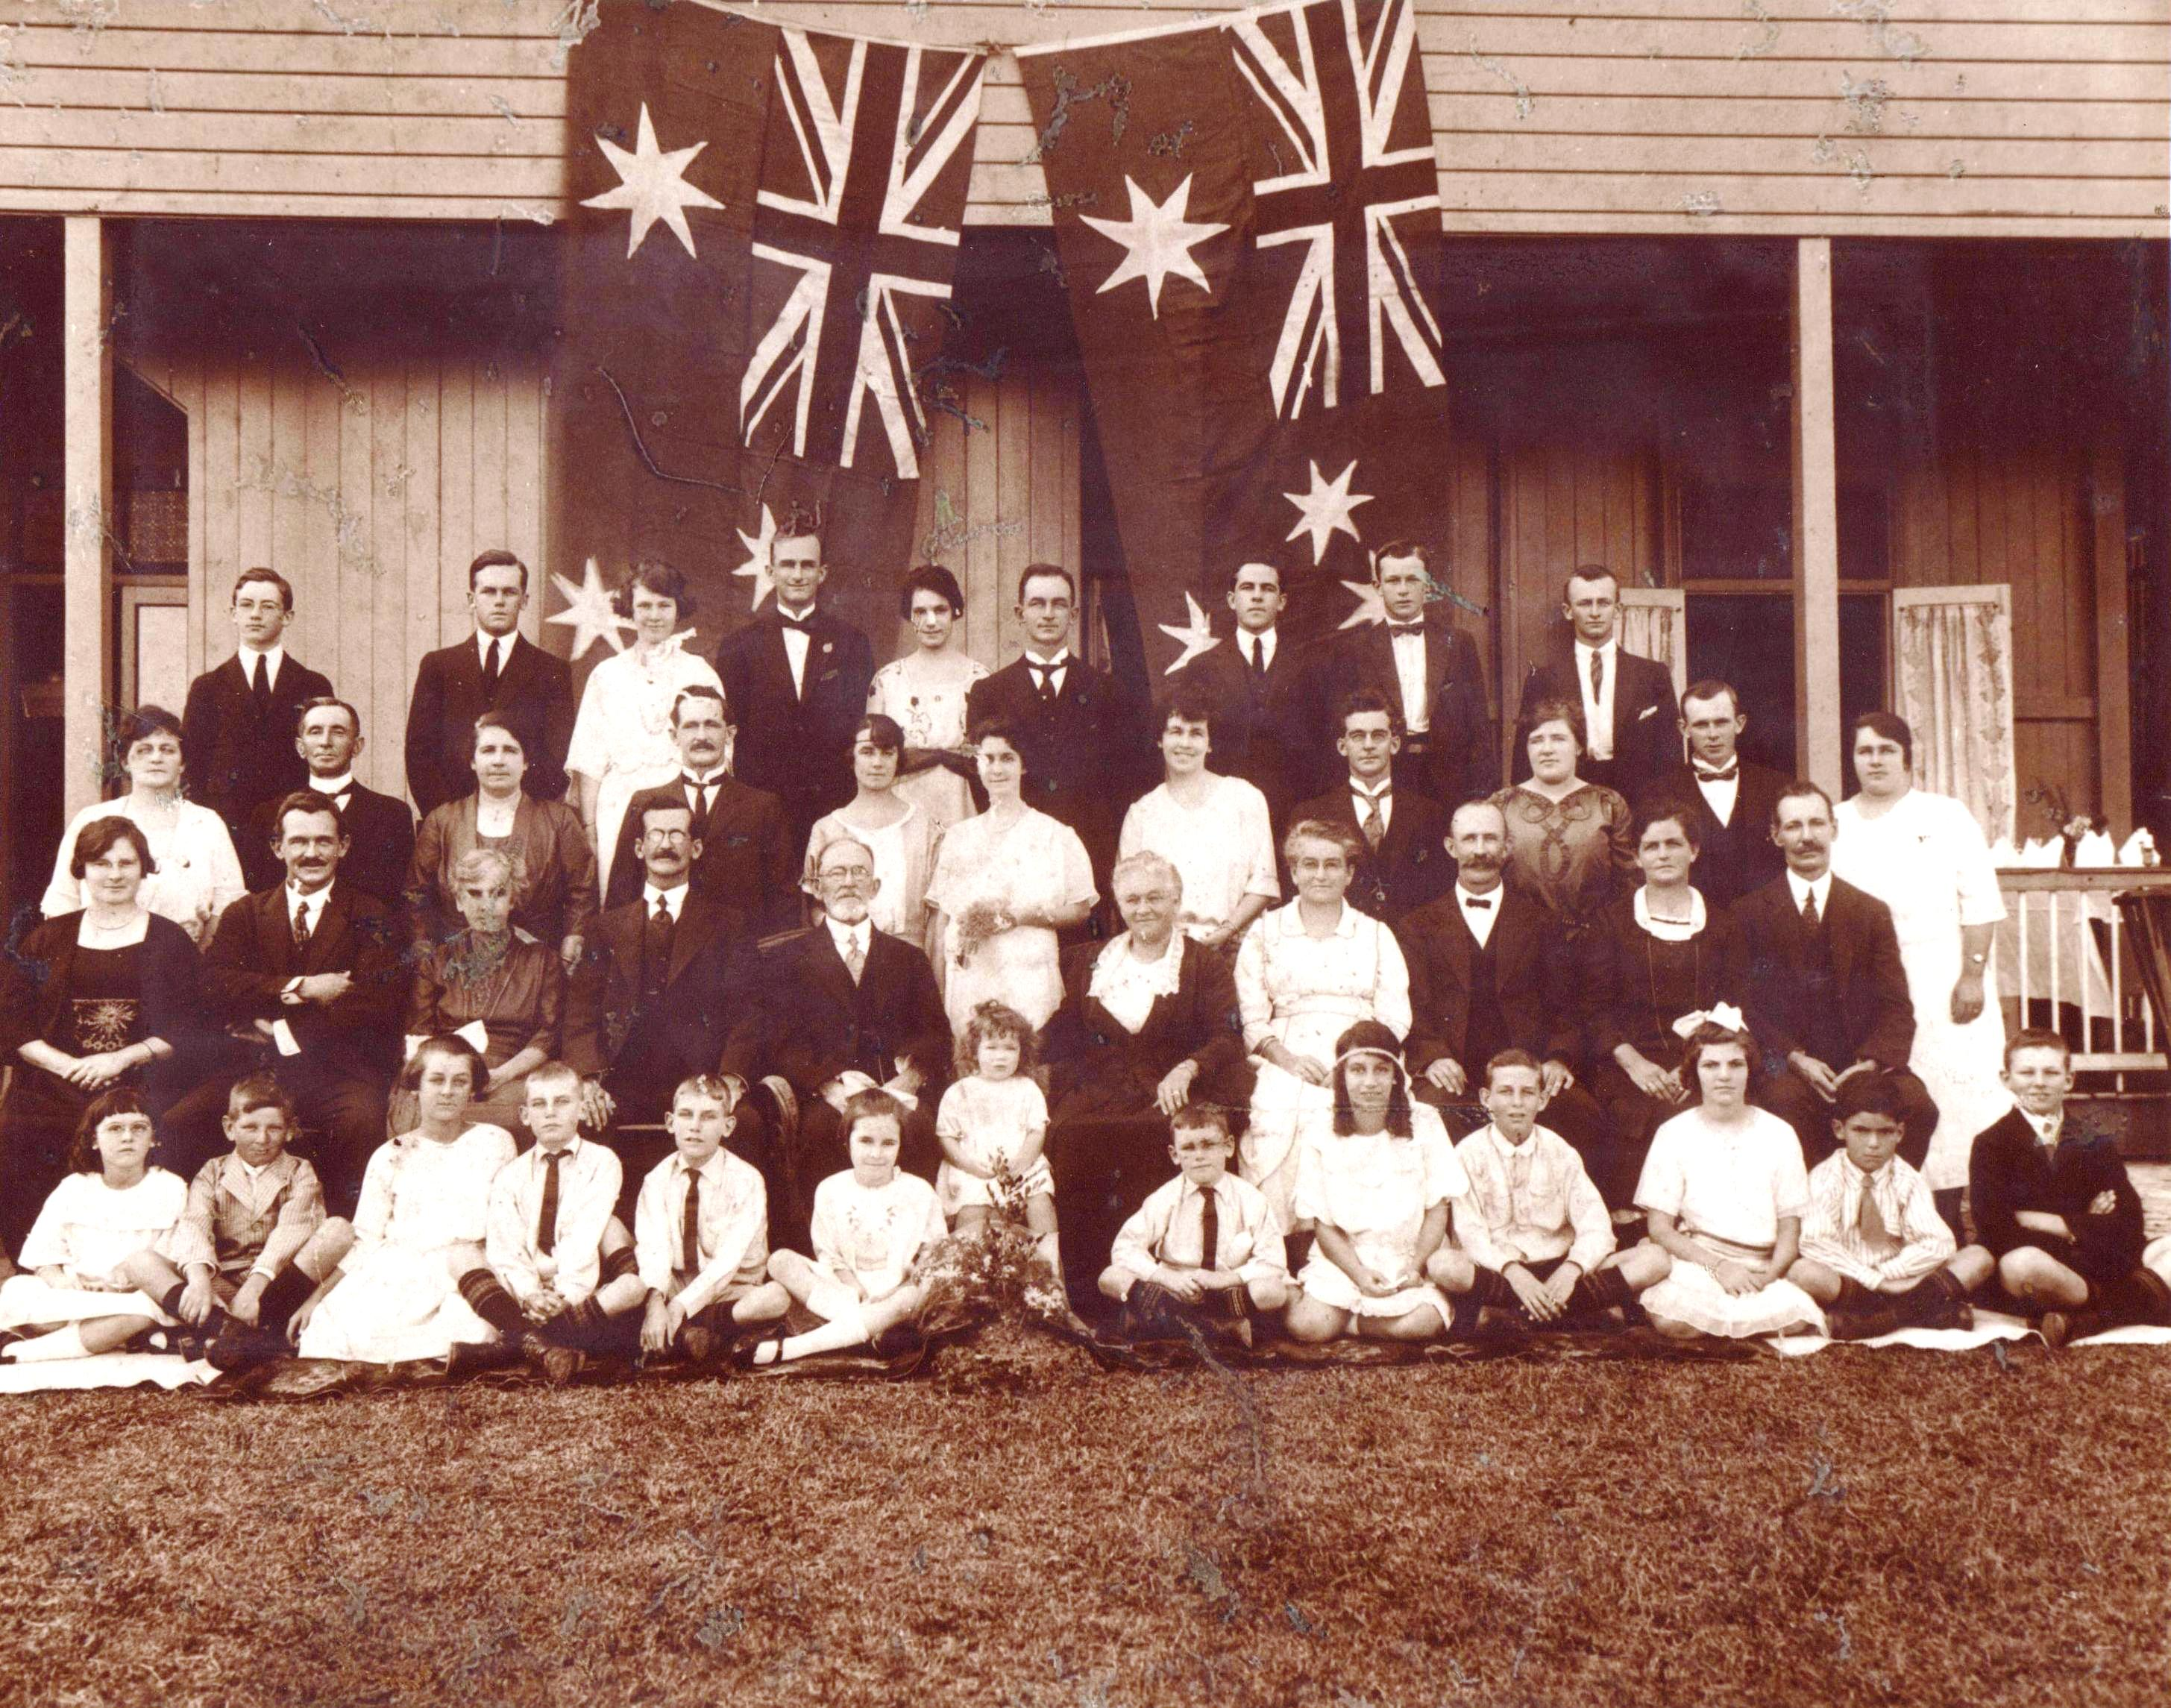 HS8 Trout Family Federation Celebration 1901